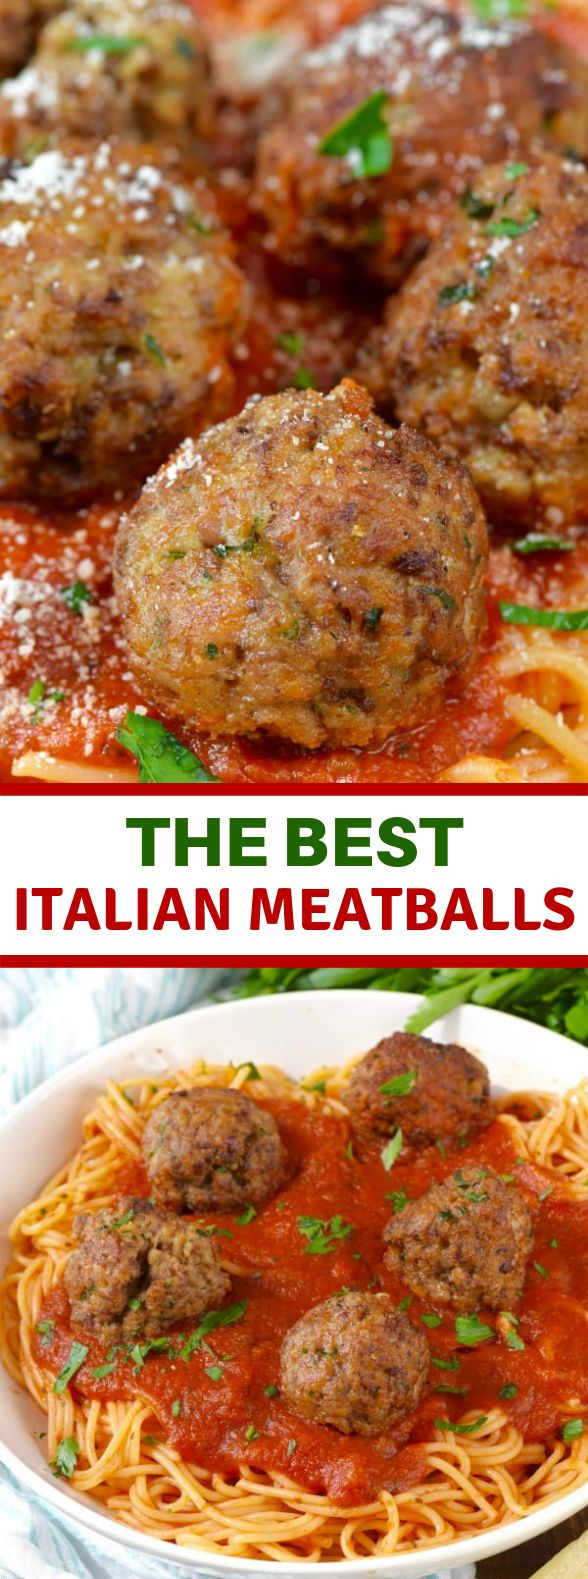 The BEST Italian Meatballs #Dinner #GrandmotherRecipe